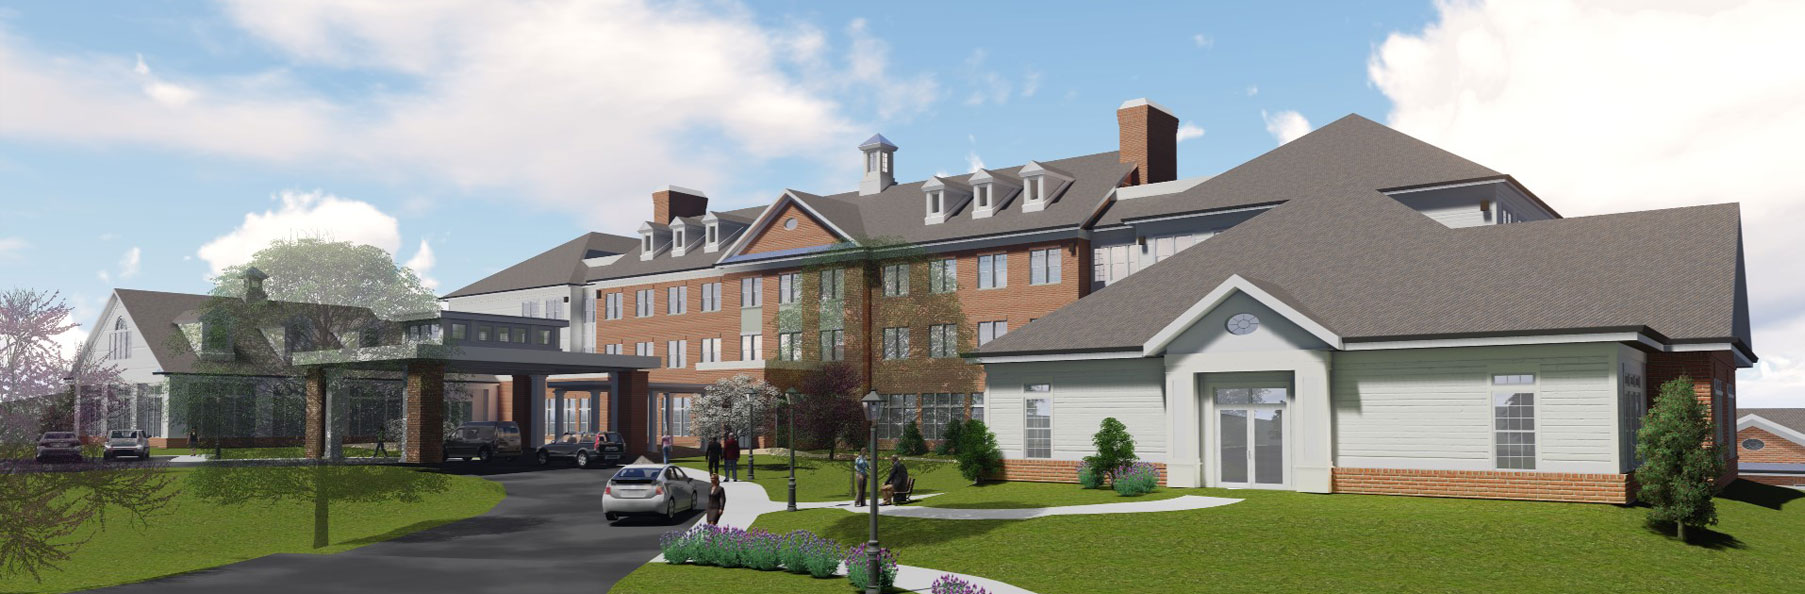 A rendering of The Culpeper senior living community